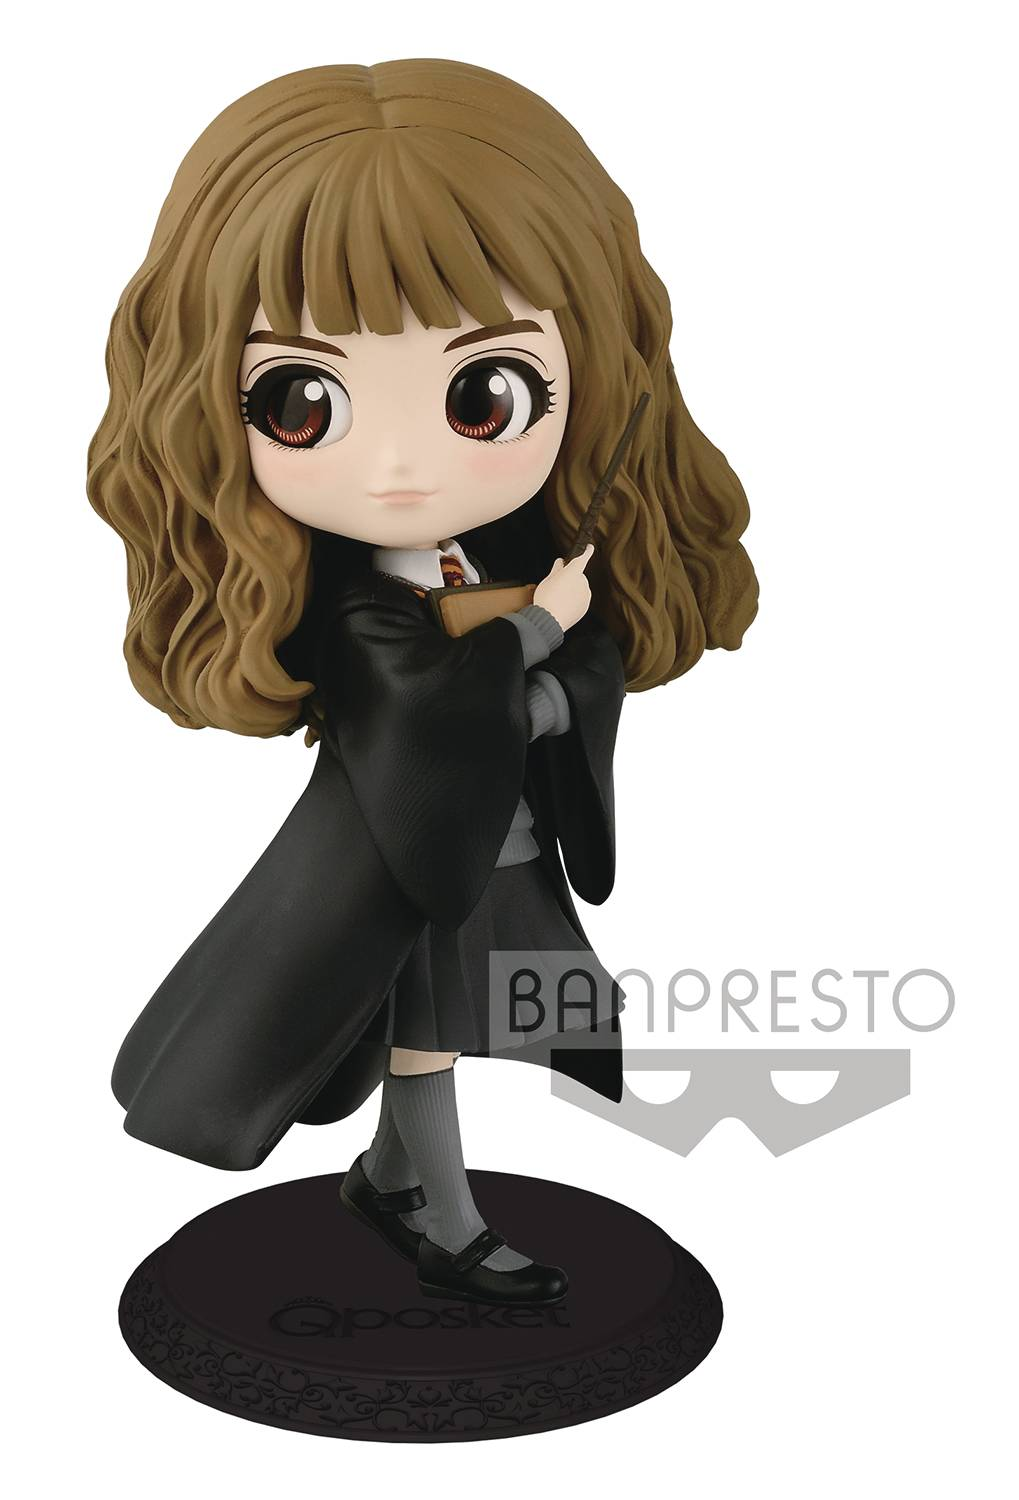 Banpresto Harry Potter Hermione Granger Q-Posket Figure